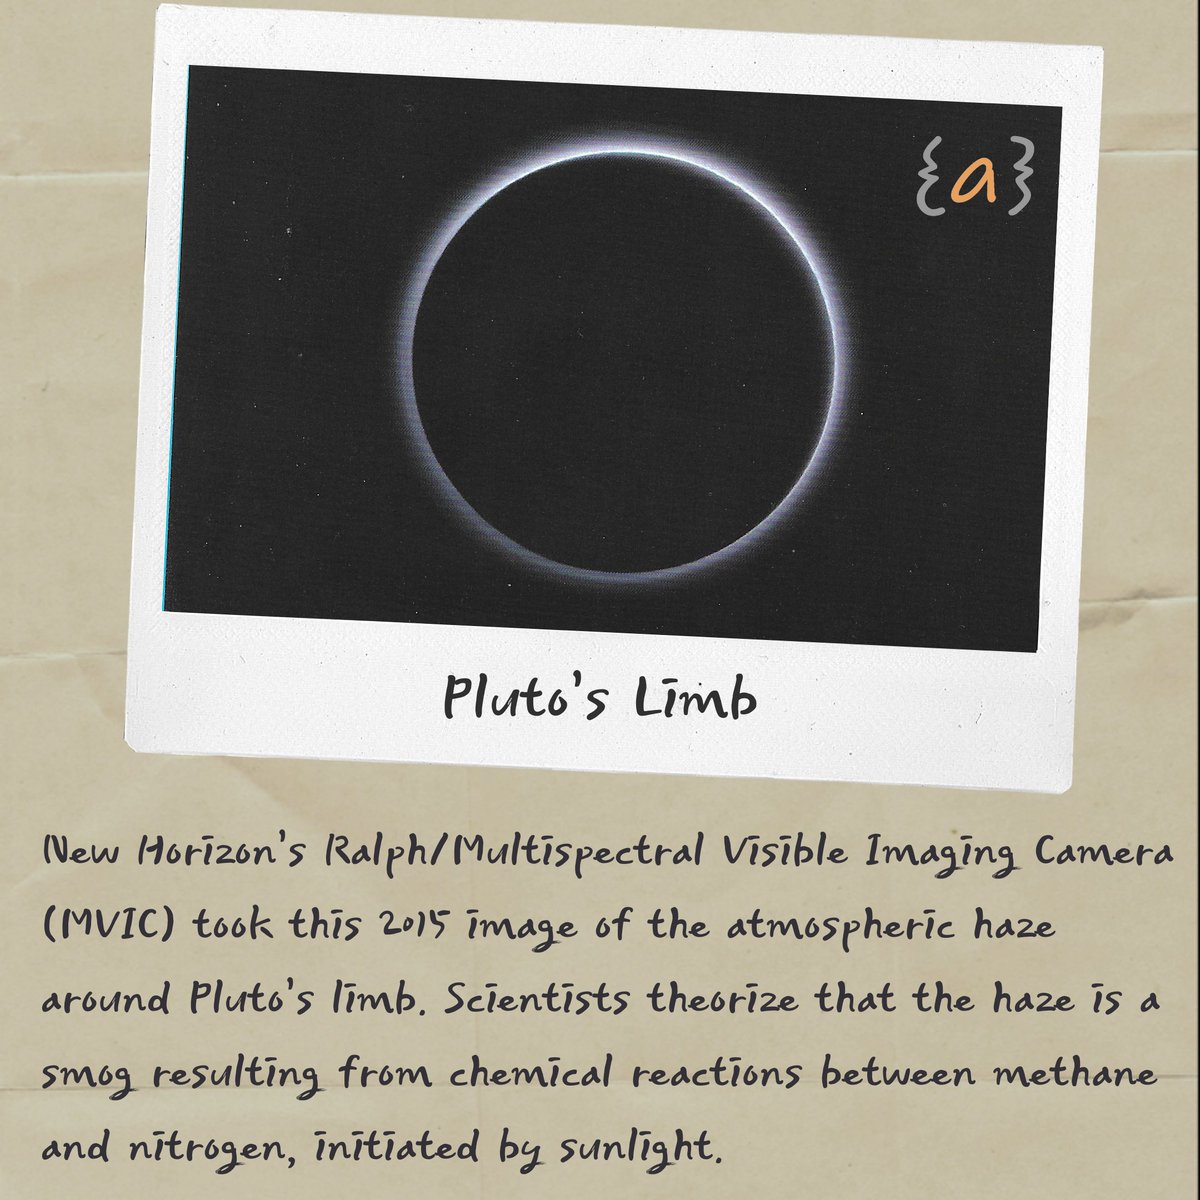 Pluto's Limb #newhorizon #mvic #pluto #methane #nitrogen #sunlight #spacephotos #journalofankit https://t.co/TJDOkJEpca